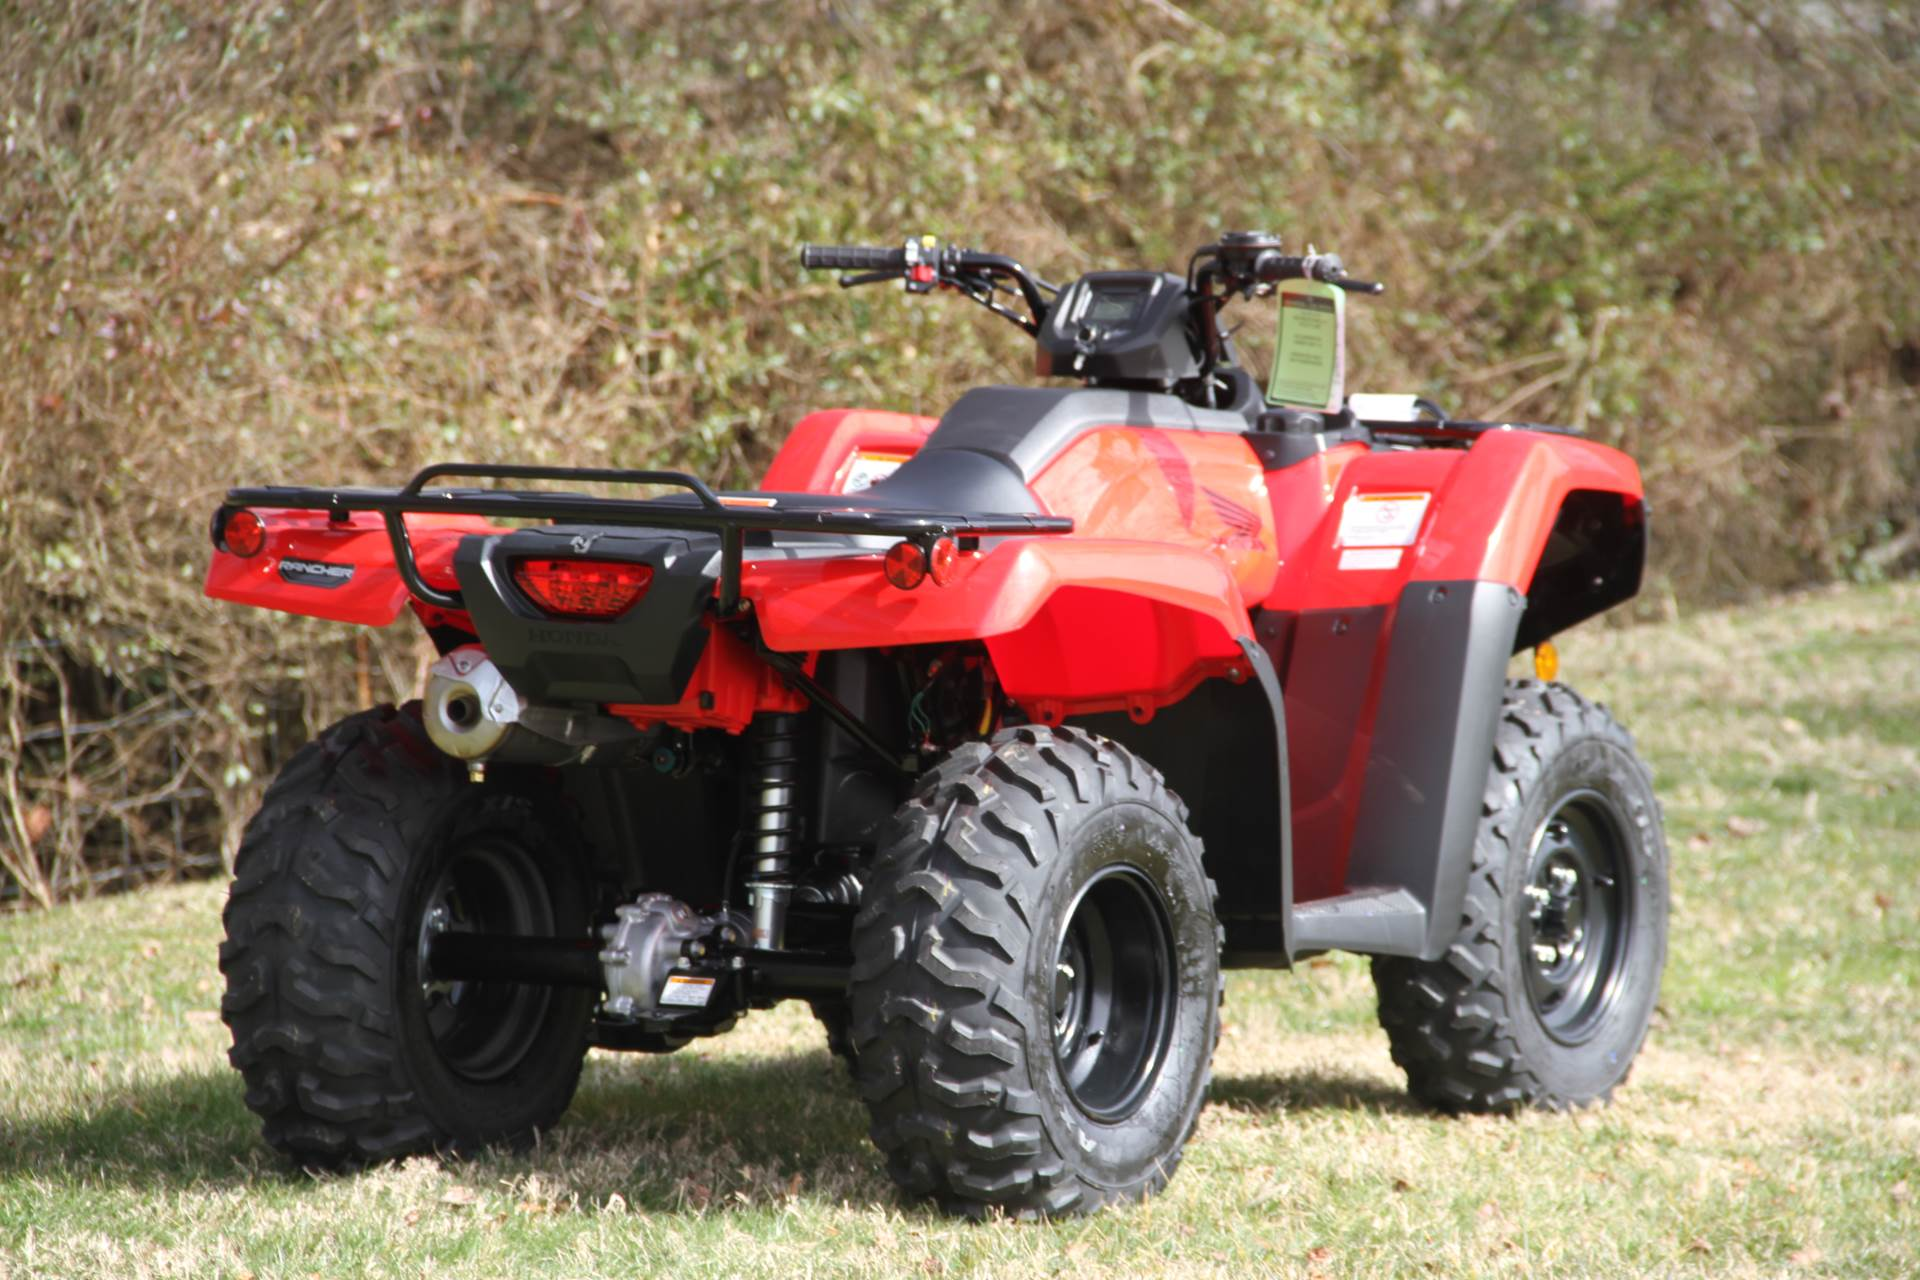 2020 Honda FourTrax Rancher 4x4 in Hendersonville, North Carolina - Photo 12